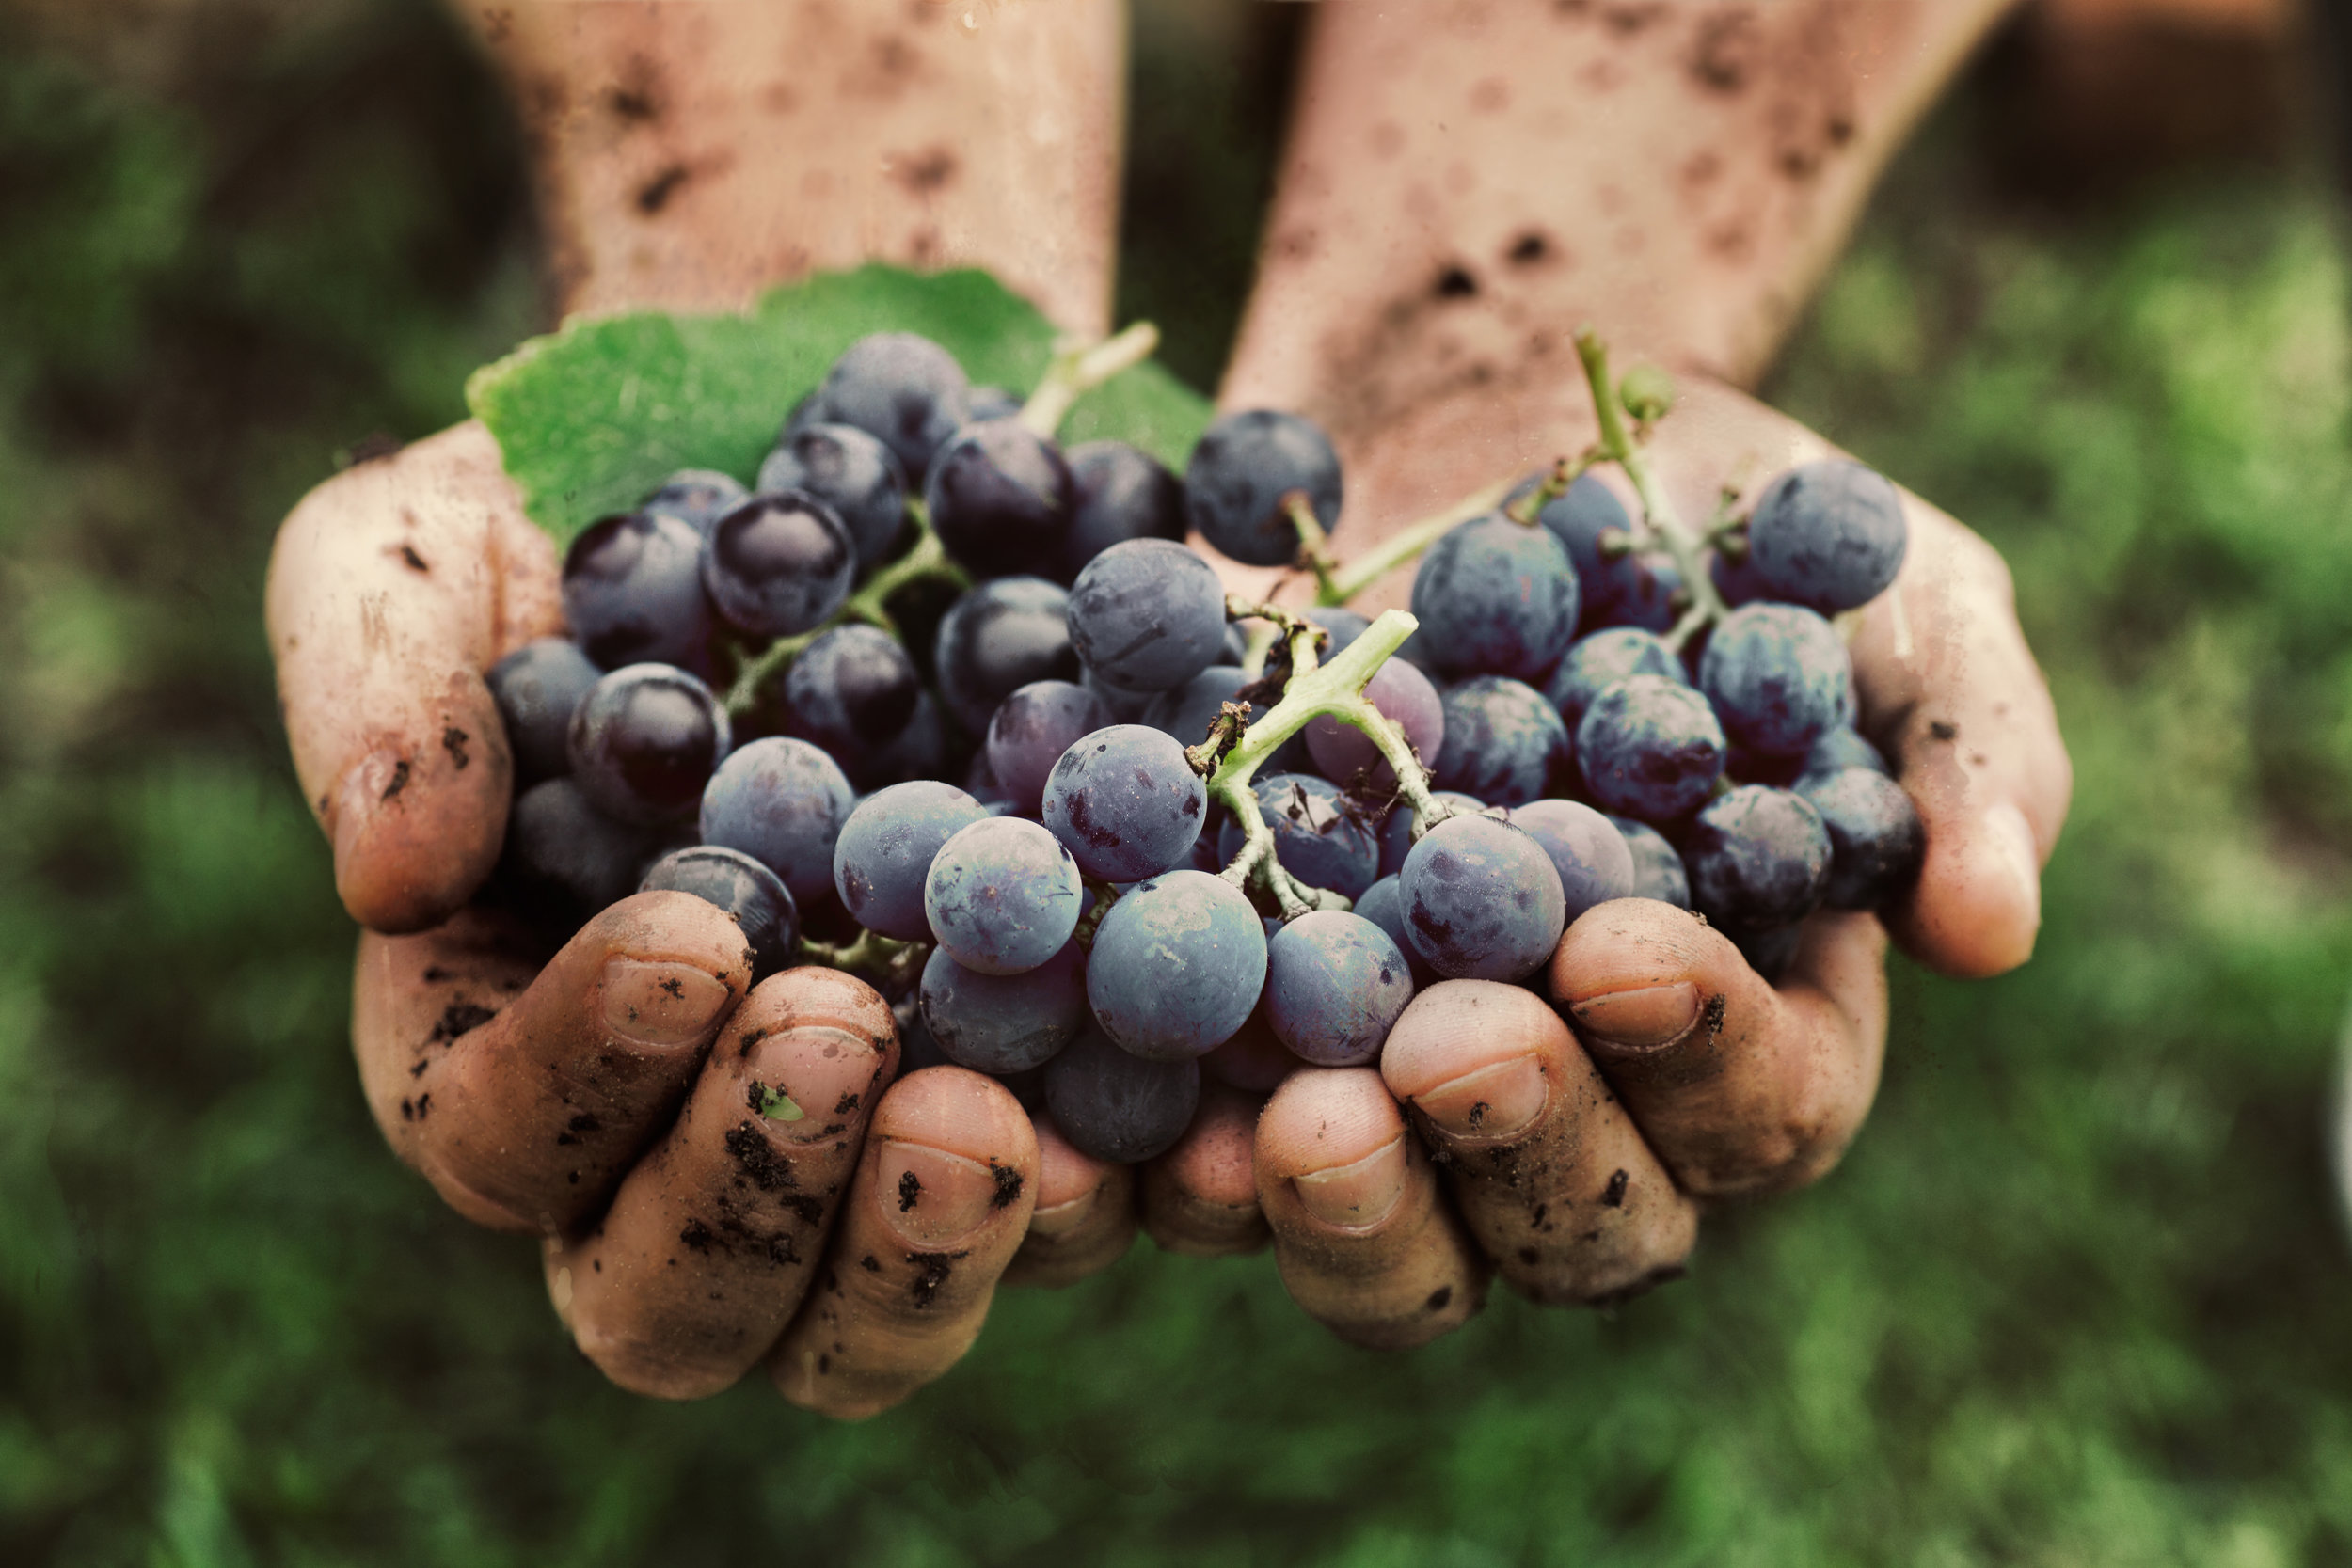 freshly harvested grapes held in bare hands